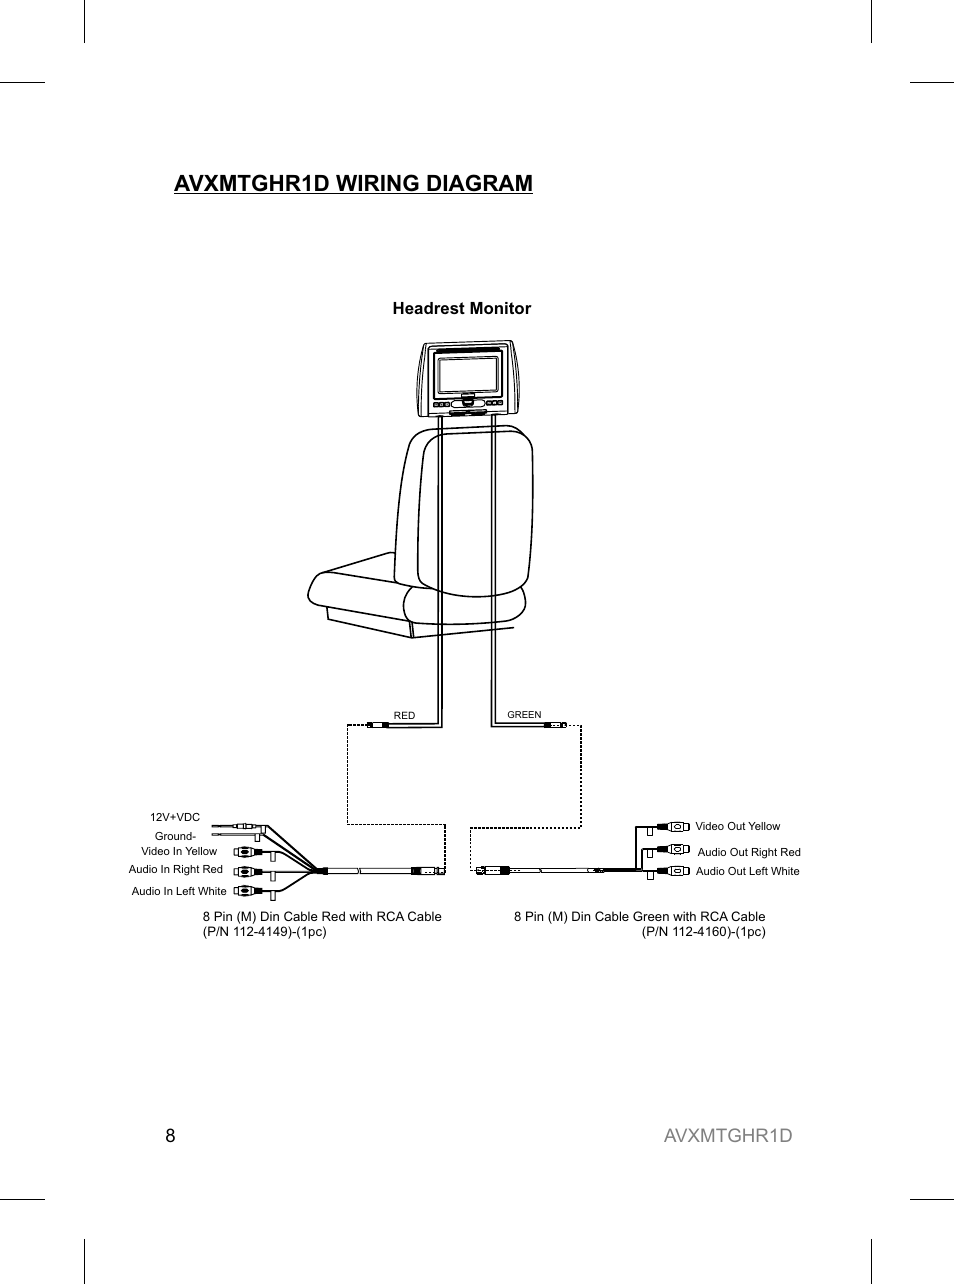 Audiovox Headrest Monitor Wiring Diagram - Trusted Wiring Diagram •